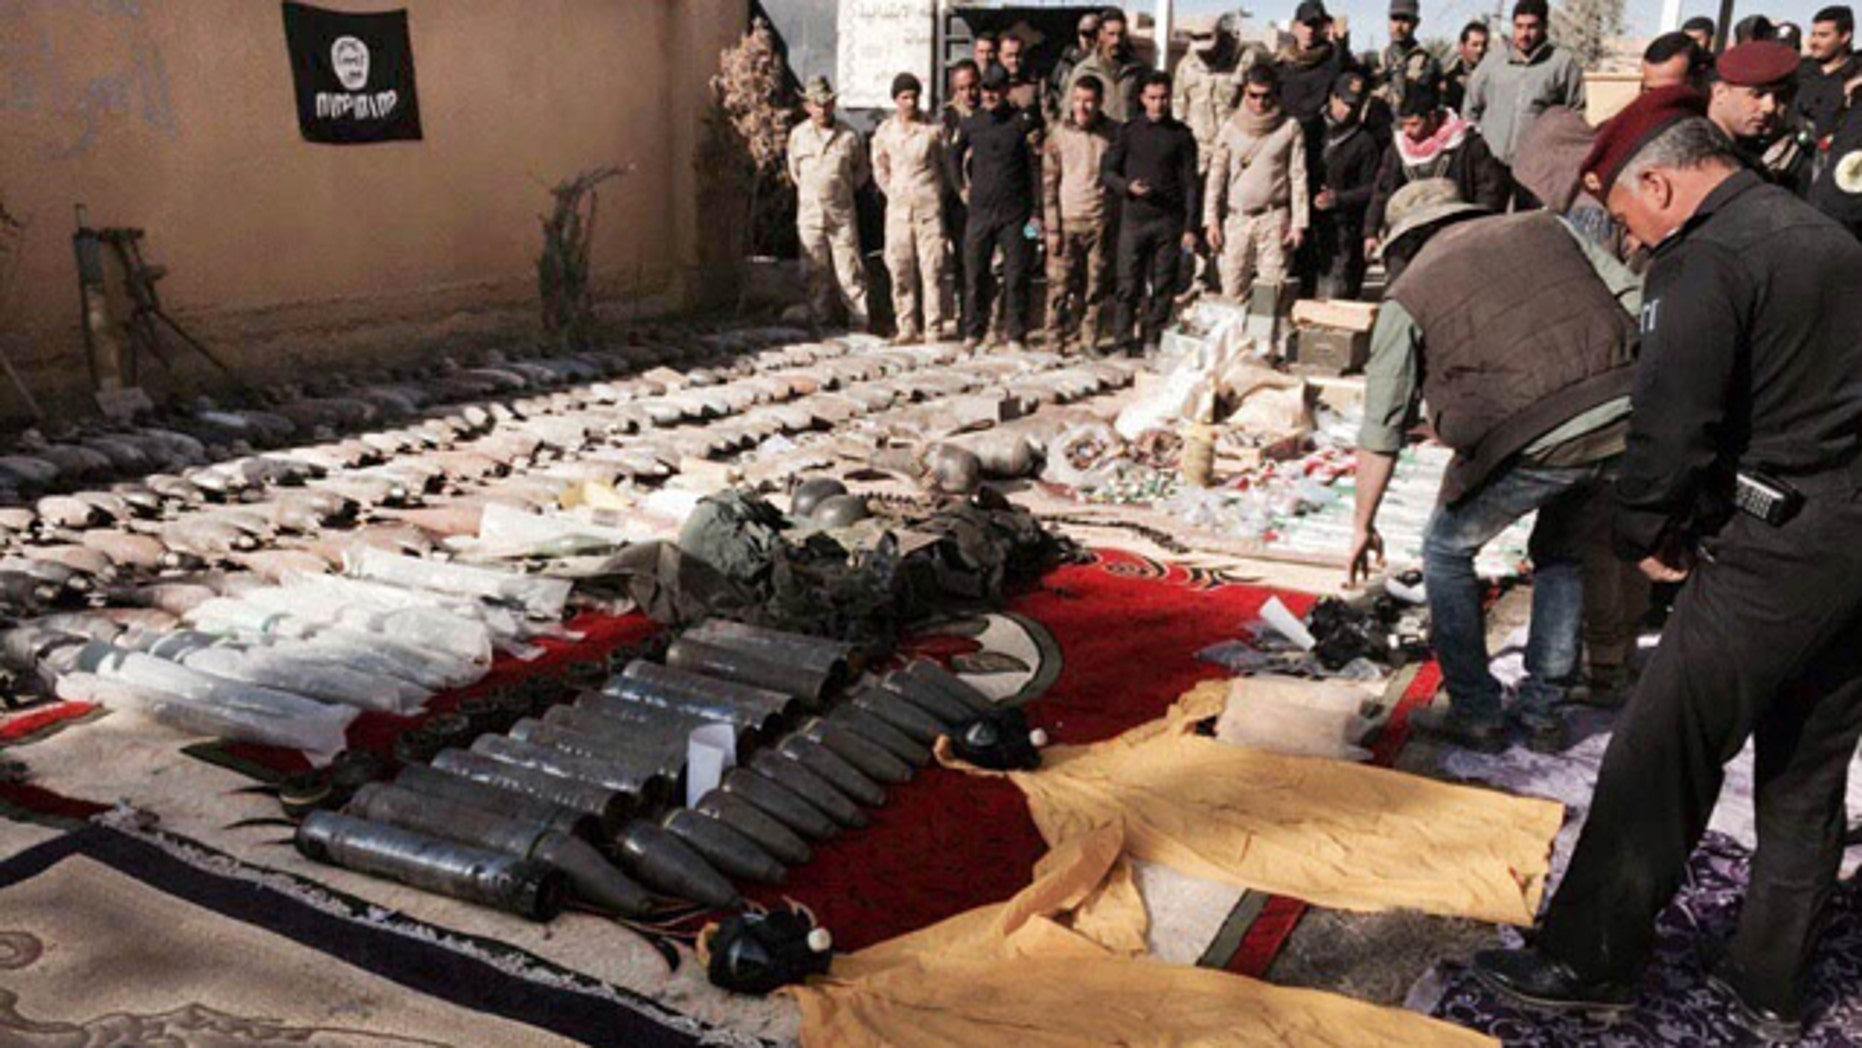 Dec. 10, 2015: Iraqi security forces look at confiscated ISIS weapons and ammunition after regaining control over the last week, in Ramadi, Anbar province, 70 miles west of Baghdad. (AP Photo/Osama Sami)